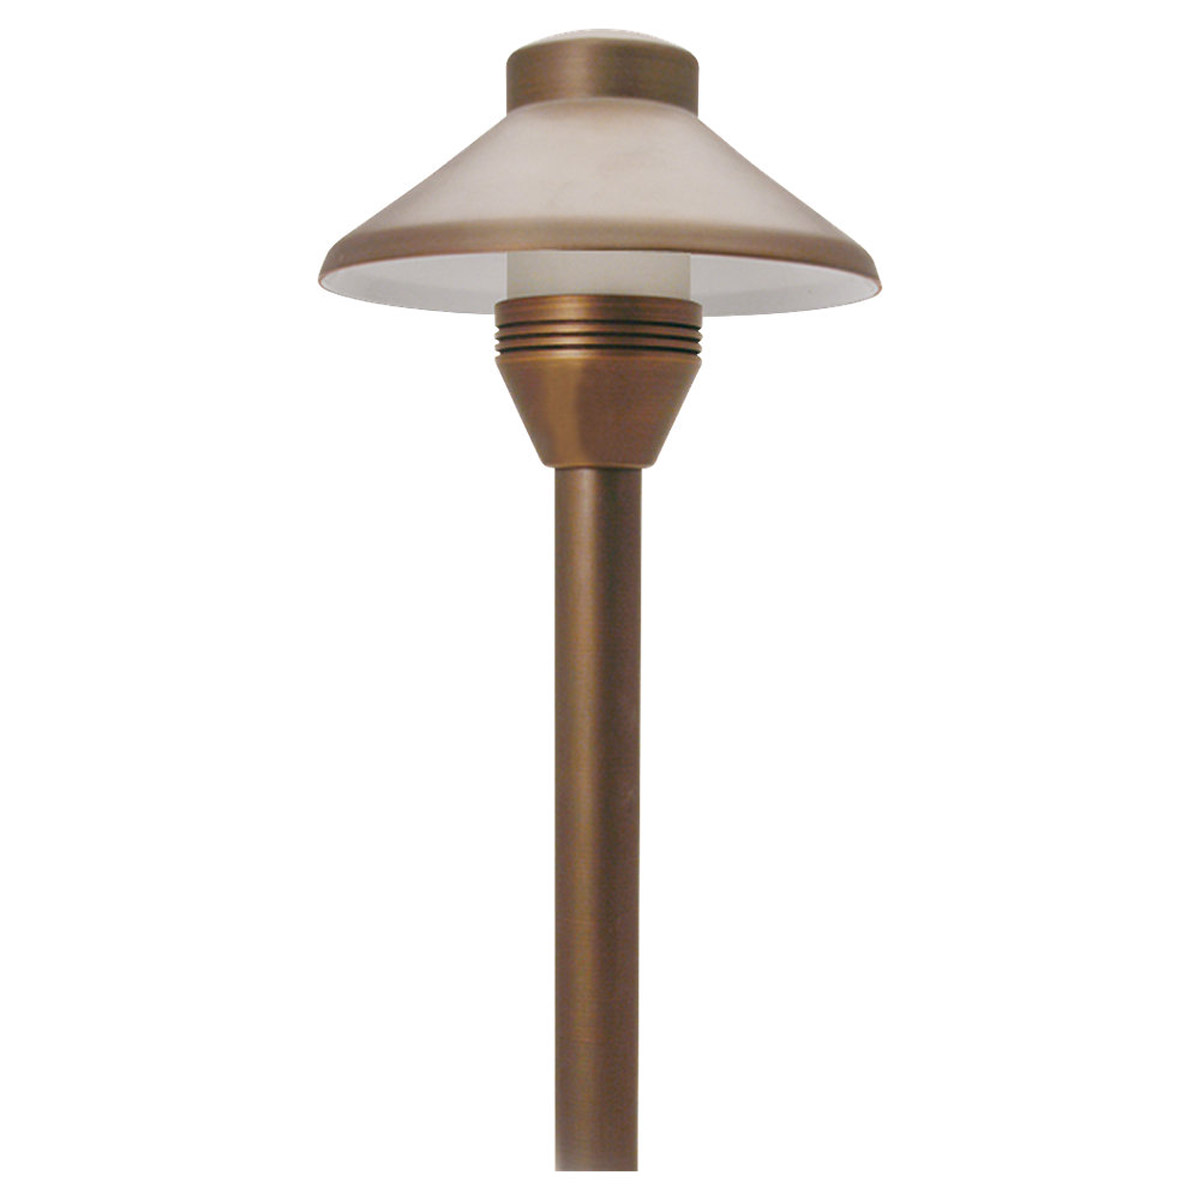 Sea Gull Lighting Imperial 1 Light Landscape Path Light in Weathered Brass 91220-147 photo